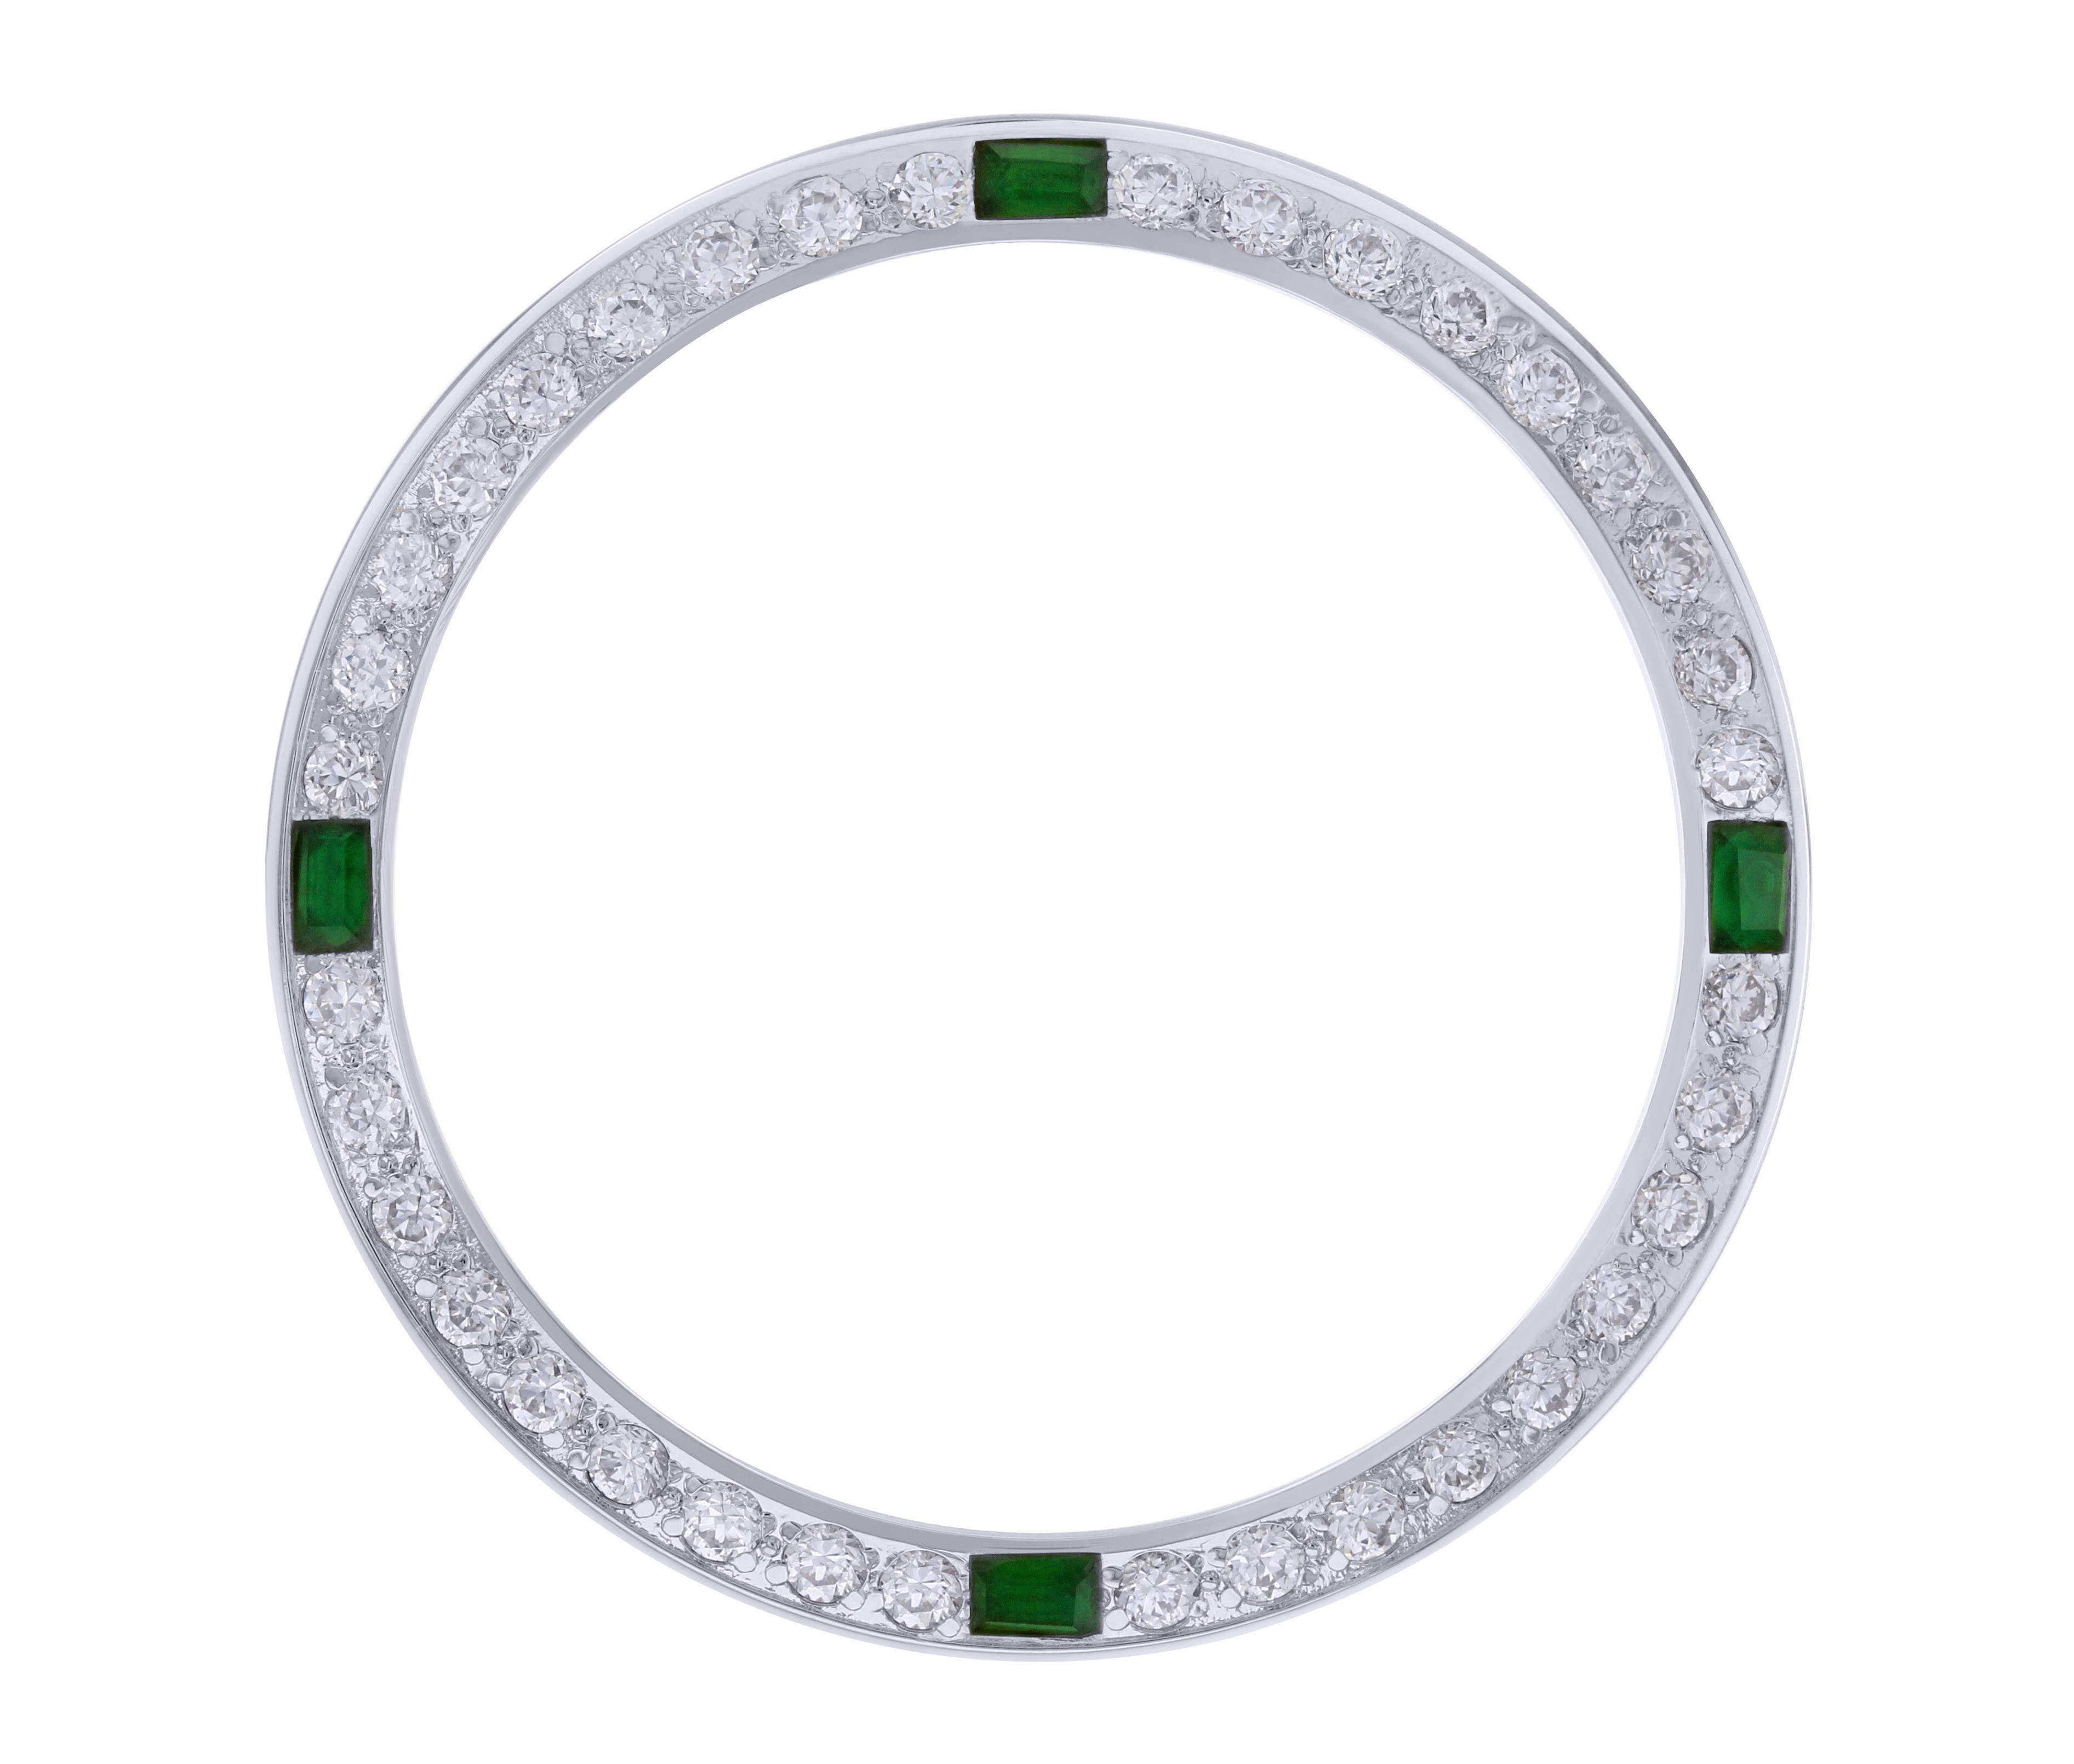 CREATED EMERALD  BEZEL FOR 36MM ROLEX TUDOR BLACK BAY AUTOMATIC WATCH WHITE